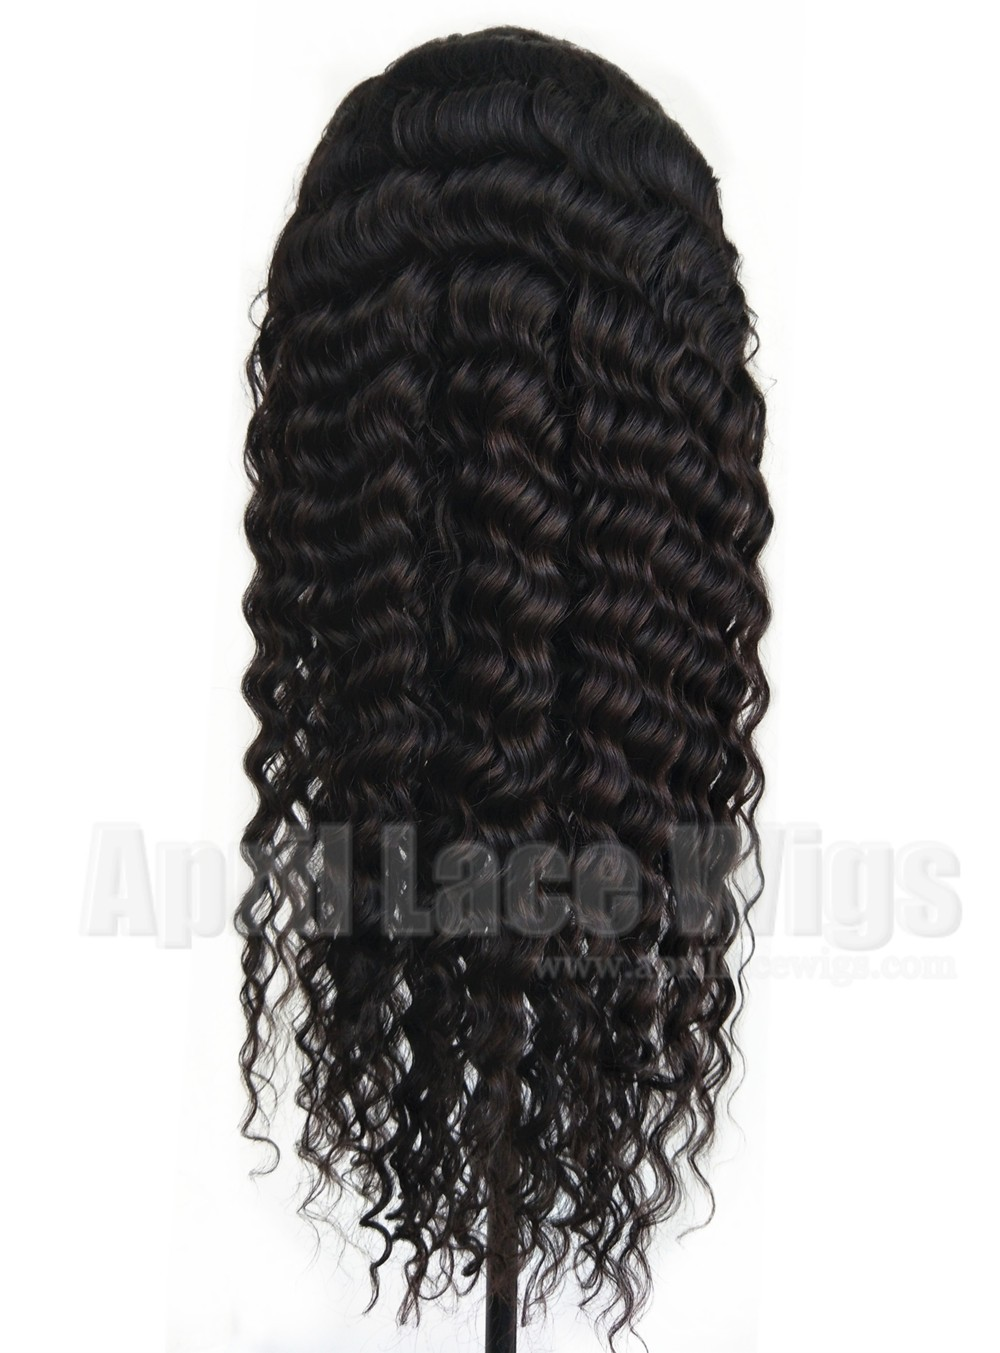 Brazilian virgin Loose deep curly glueless 360 wig pre-plucked hairline